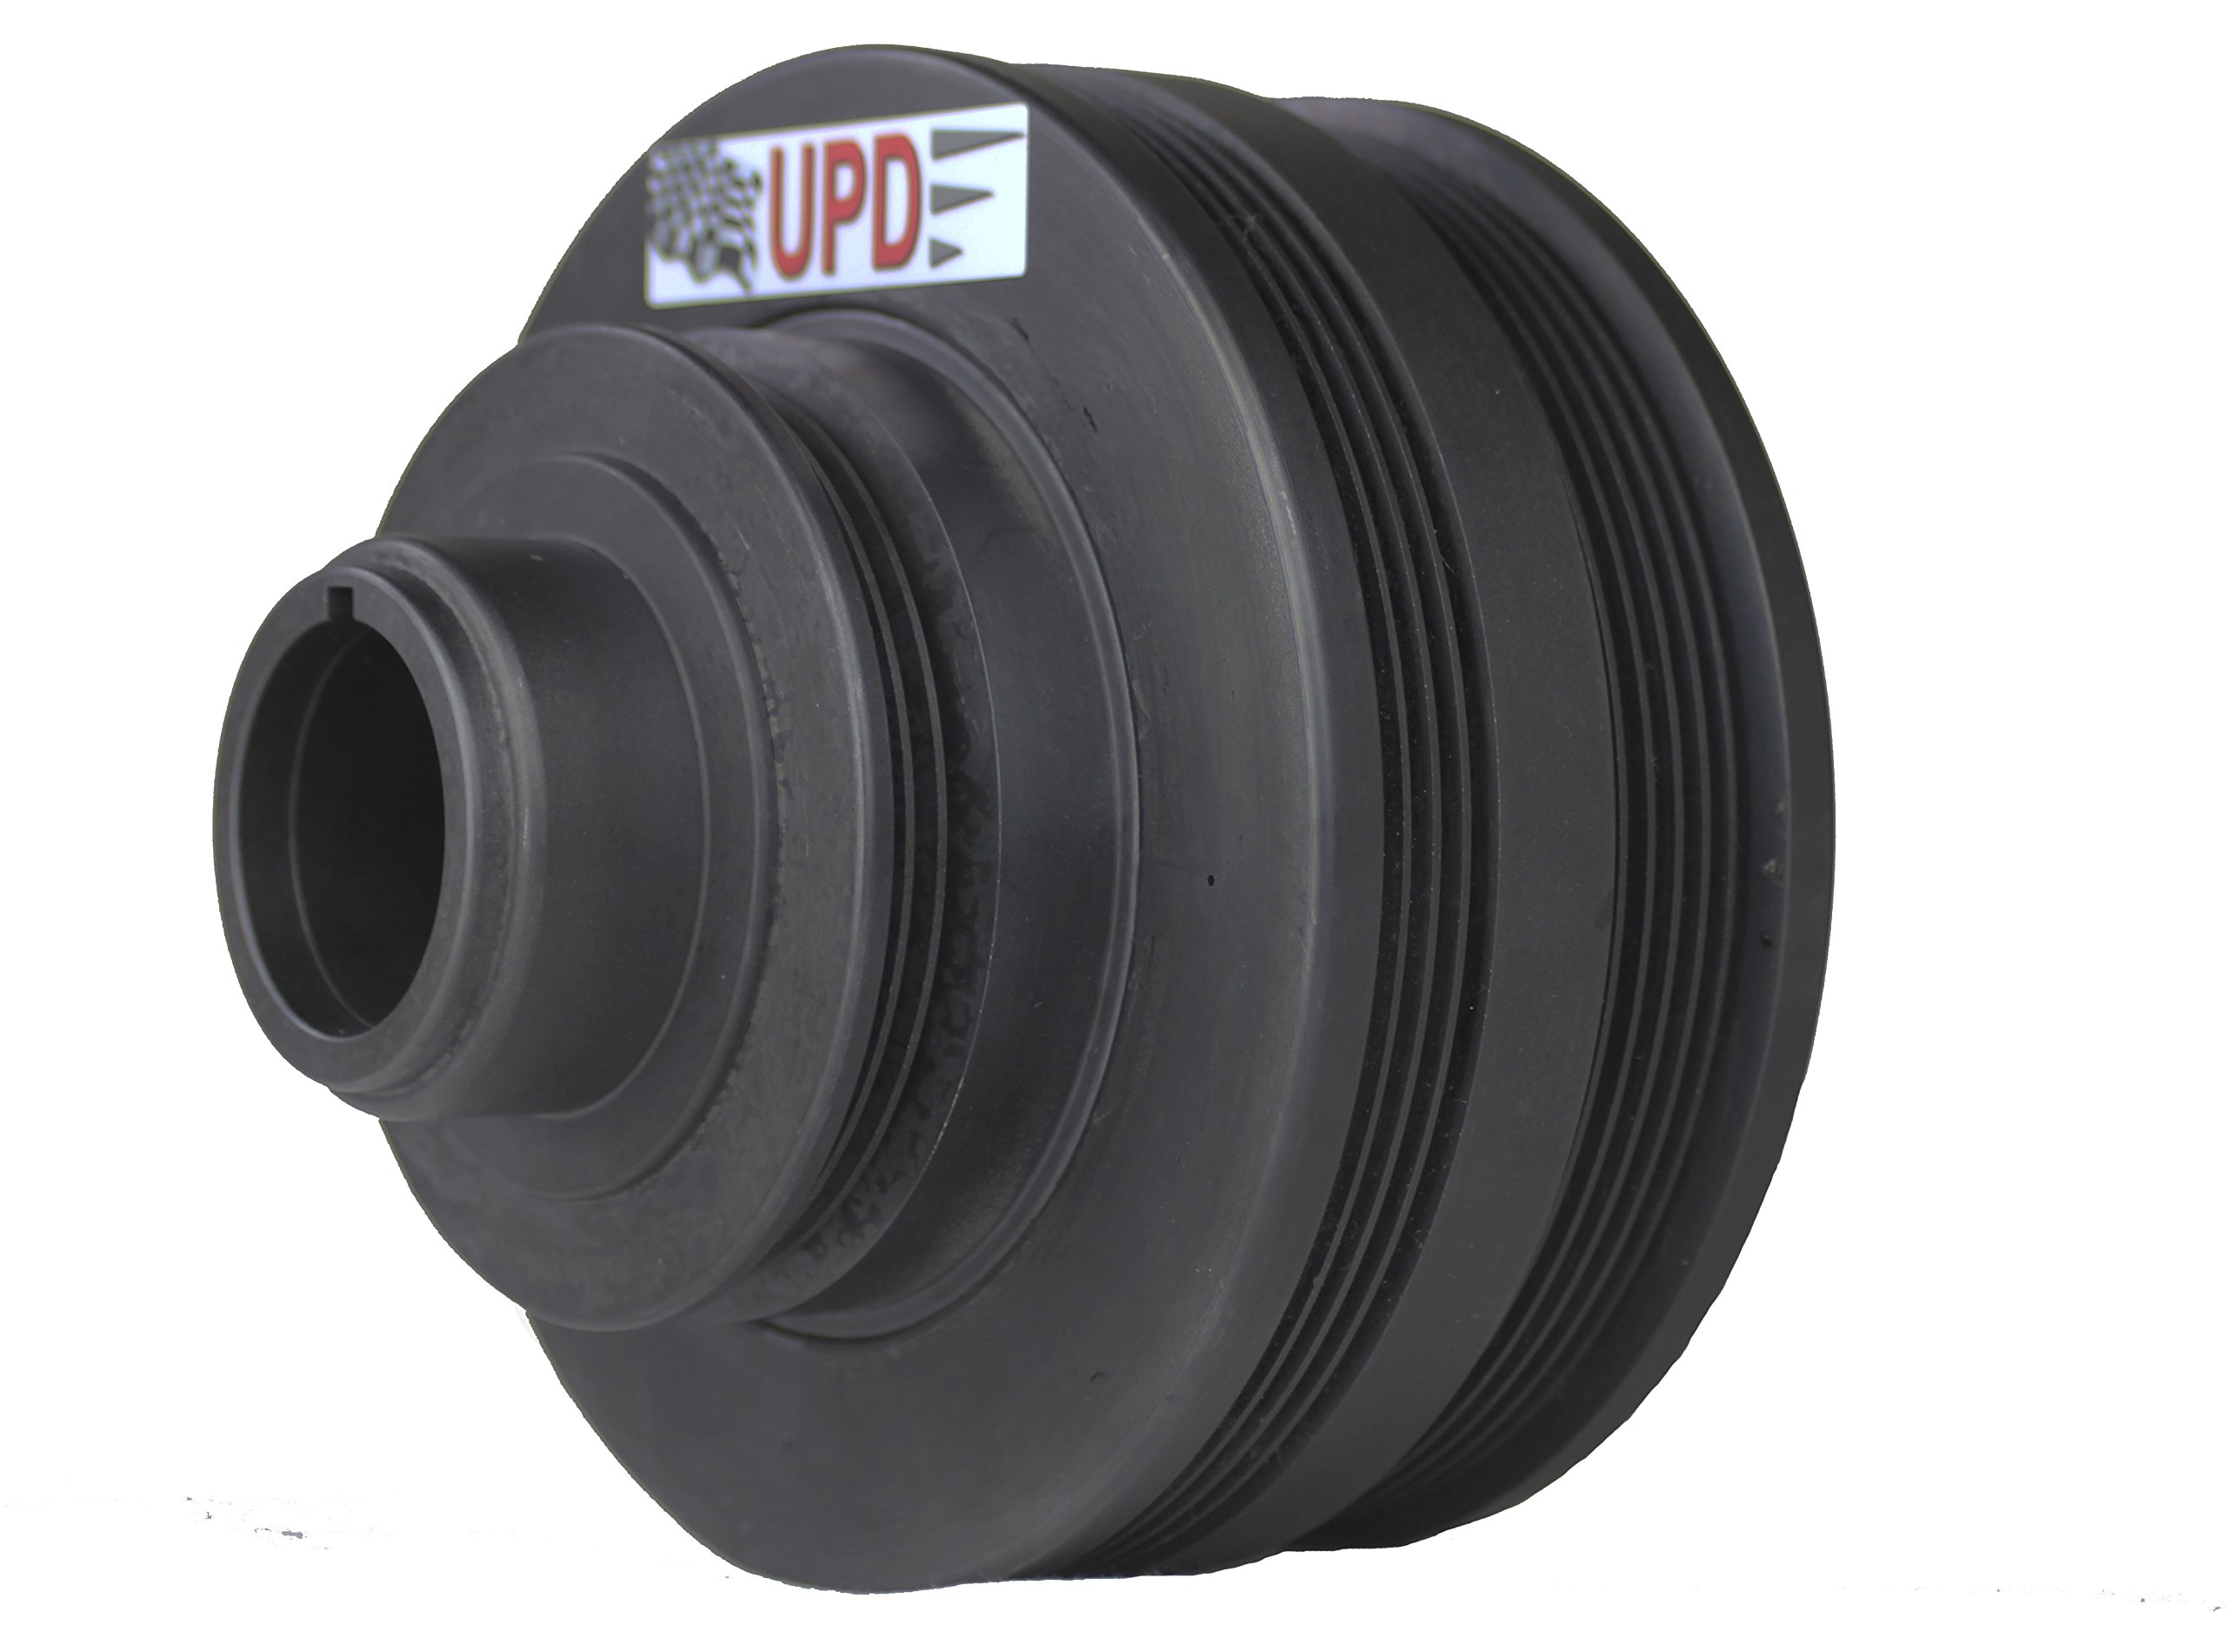 UPD 2014 Chevrolet and GM Truck Underdrive Crank Pulley by UPD